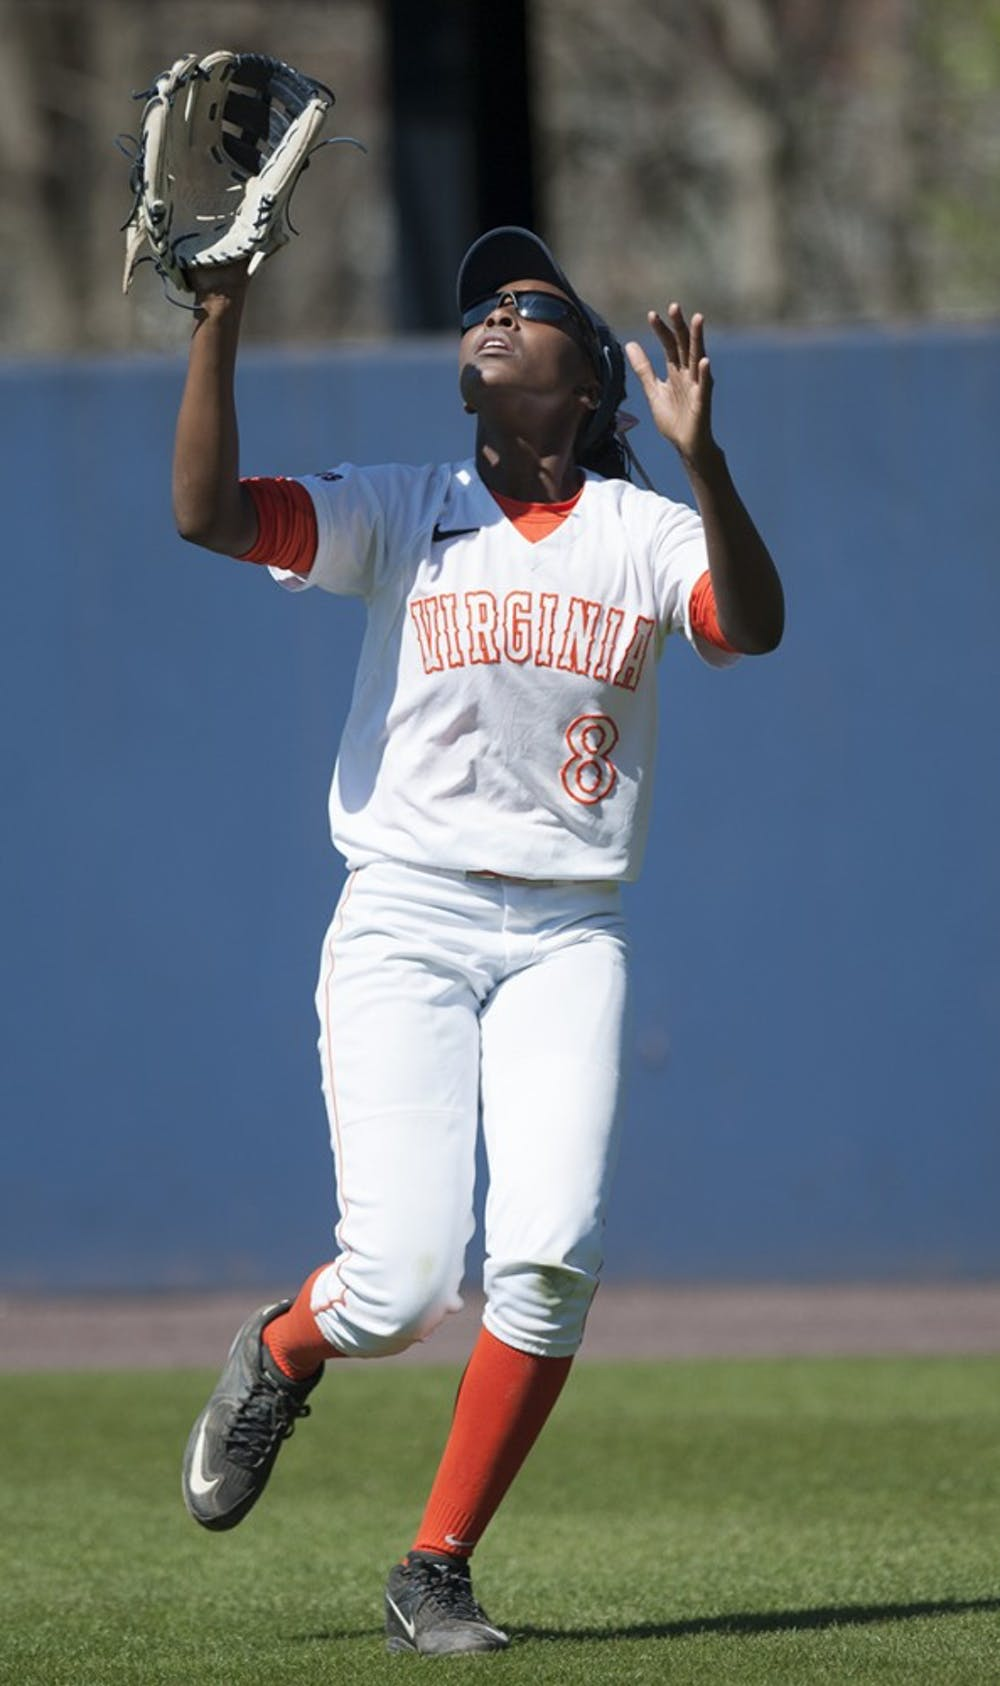 <p>Virginia junior outfielder Iyana Hughes hit a key three-run homerun in the seventh inning to help Virginia win a tightly contested third&nbsp;game, 4-2.</p>